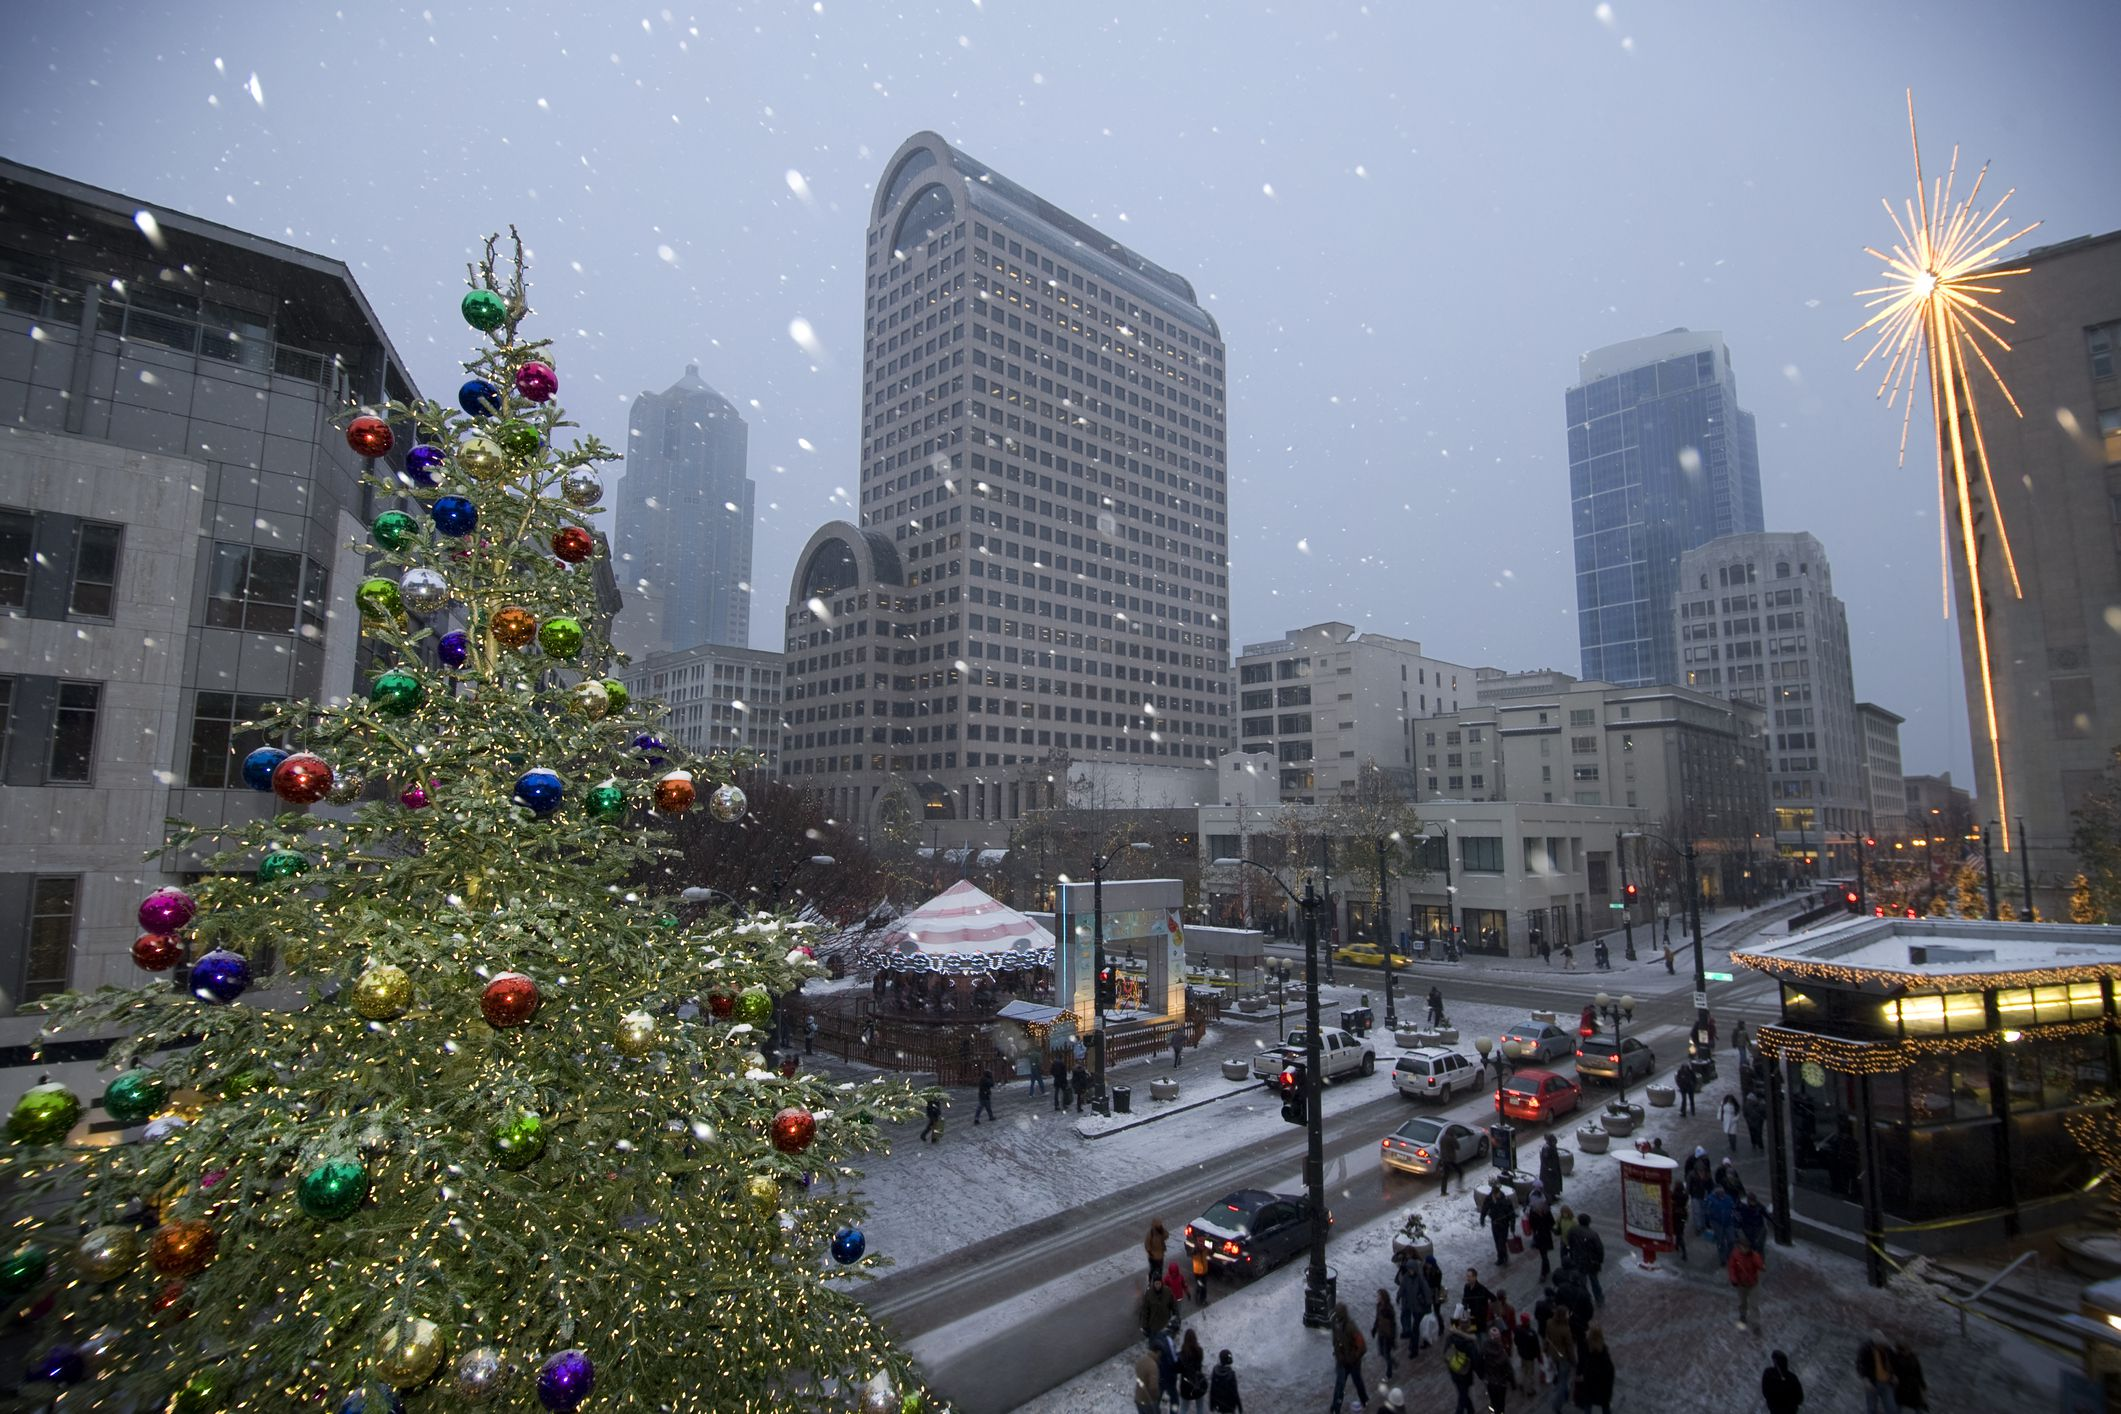 Seattle Christmas Tree Lighting 2019 Things to do for the Christmas Season in Seattle